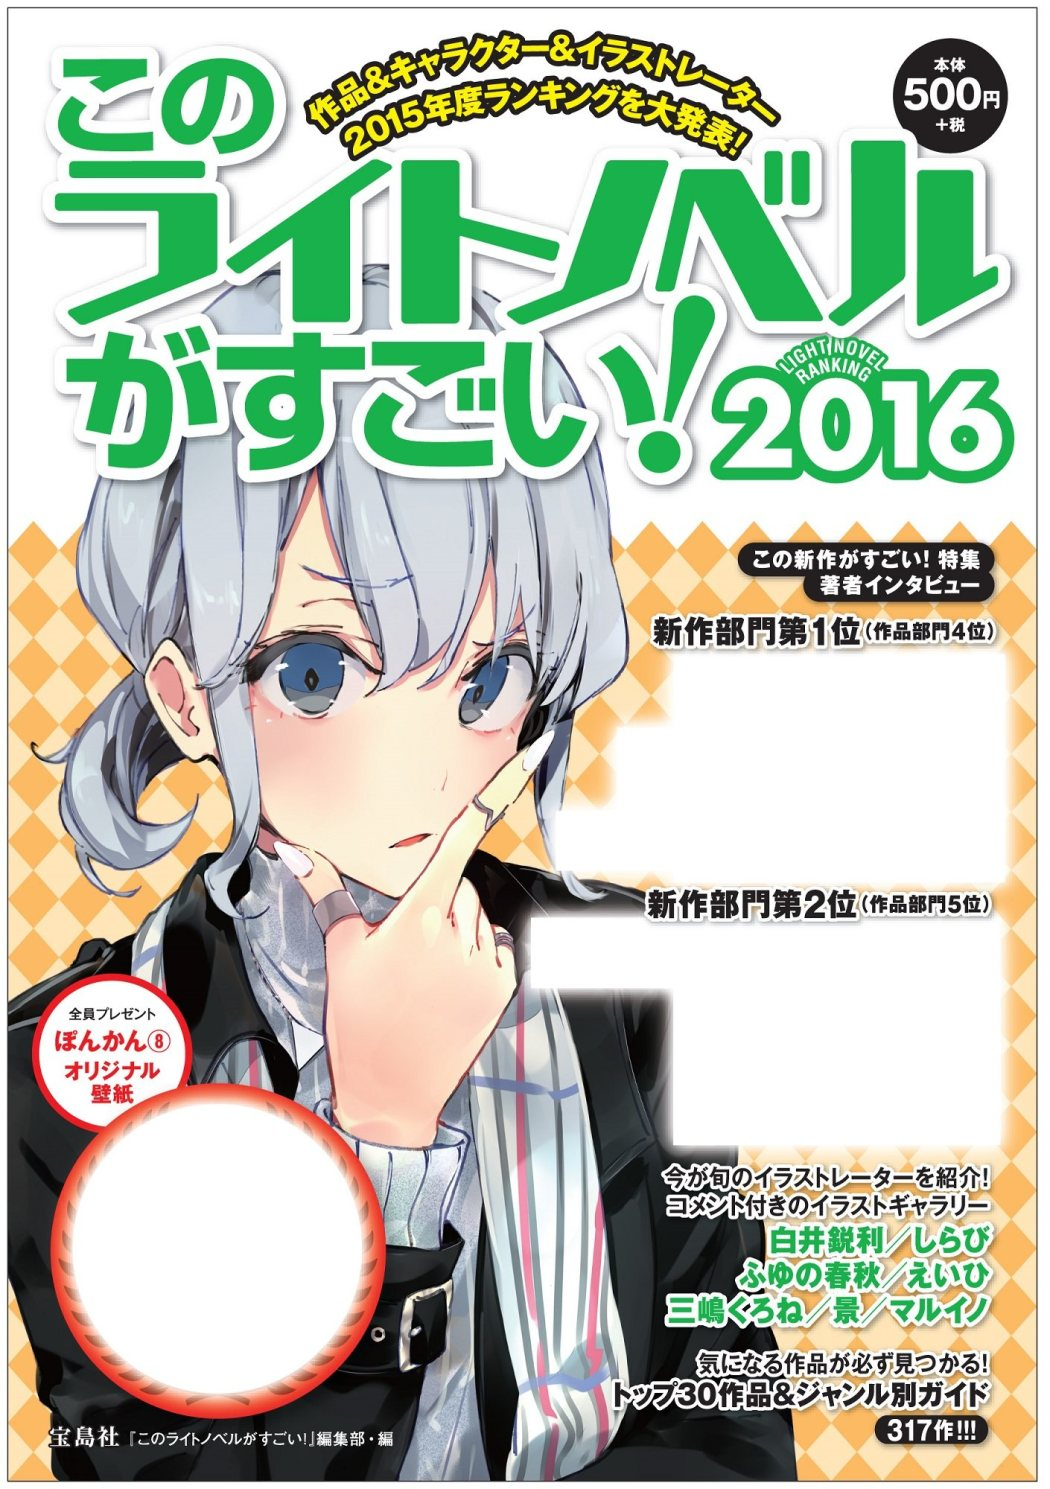 Kono Light Novel ga Sugoi 2016 Oregairu